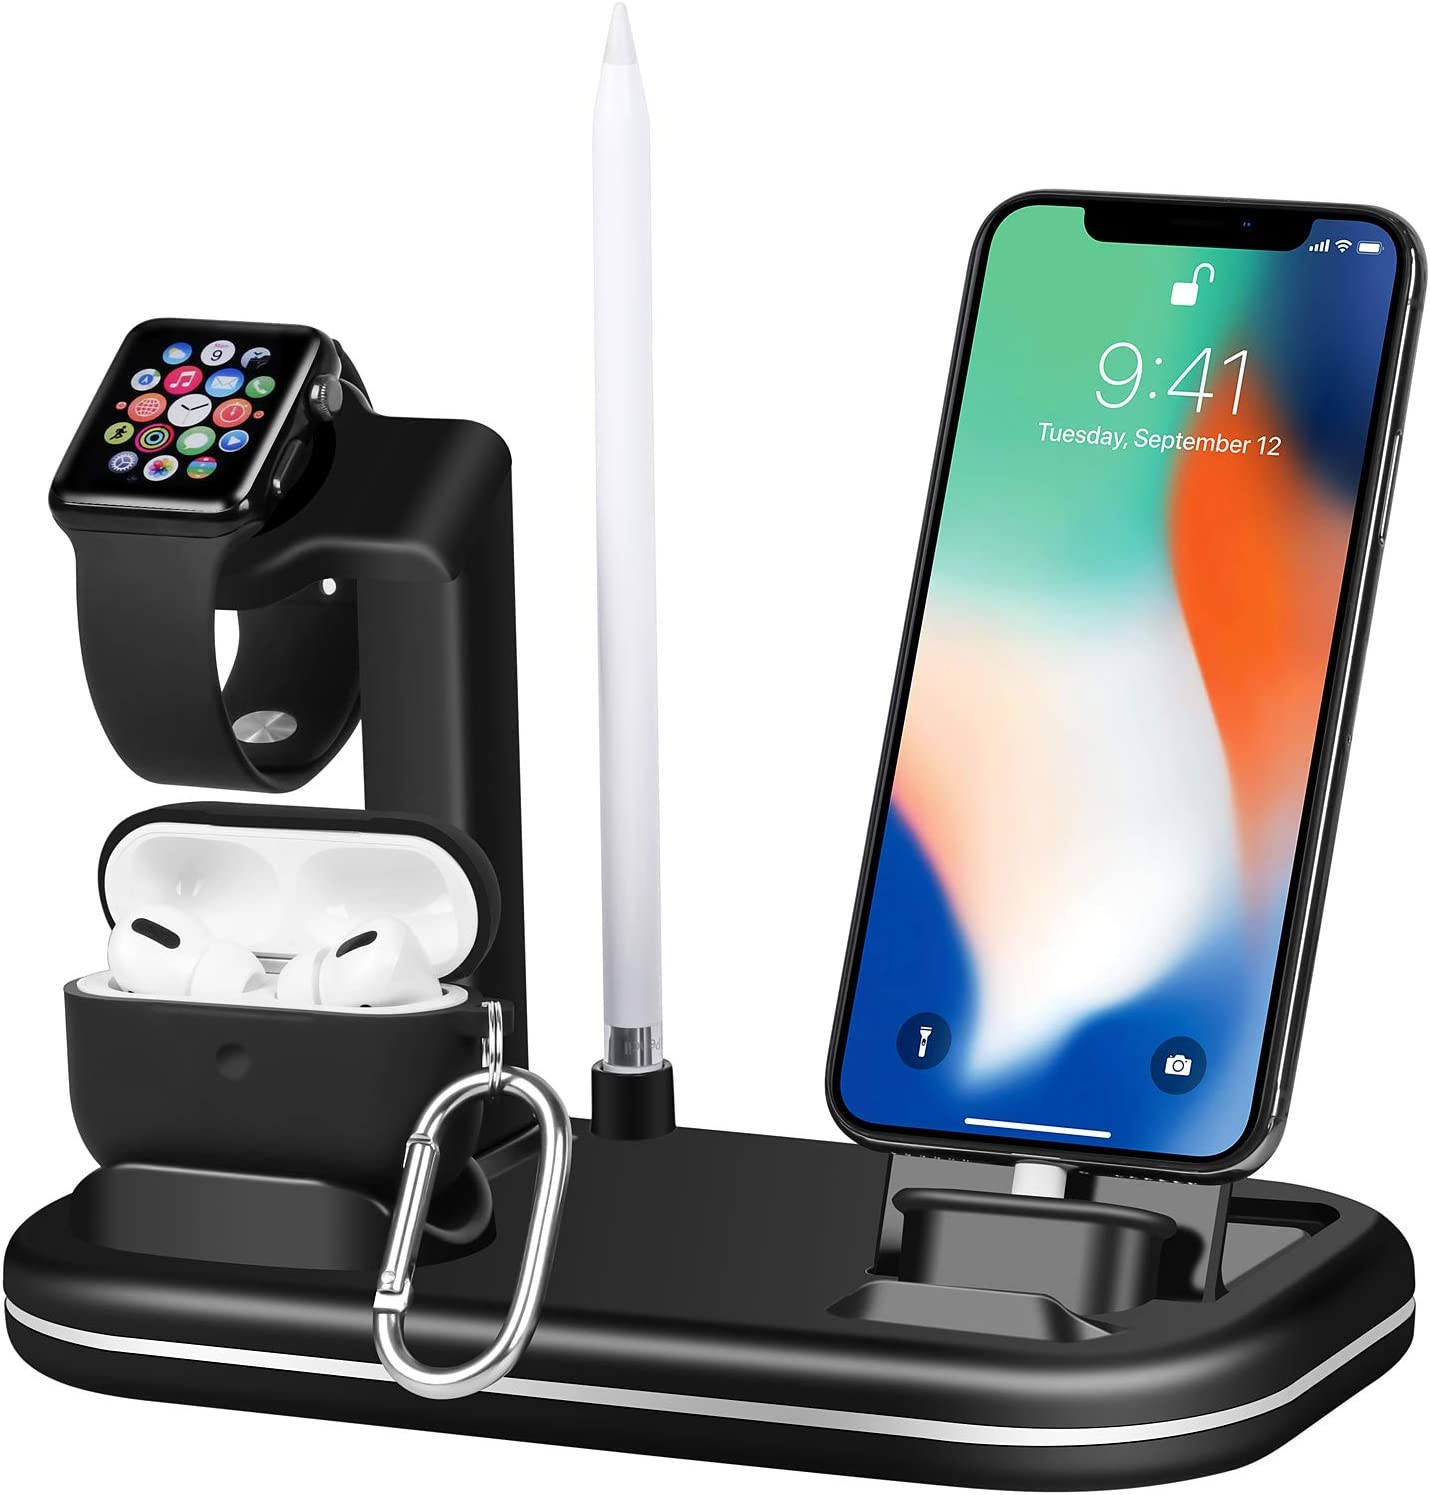 Lxtopdk for Apple Watch Charger Stand,4 in 1 Charger Charging Dock Stand Station for Apple iWatch 6/SE/5/4, Build-in Charge Cable for iPhone 12/iPad/iPod/Airpods Pro,Pencil Holder Dock-Black